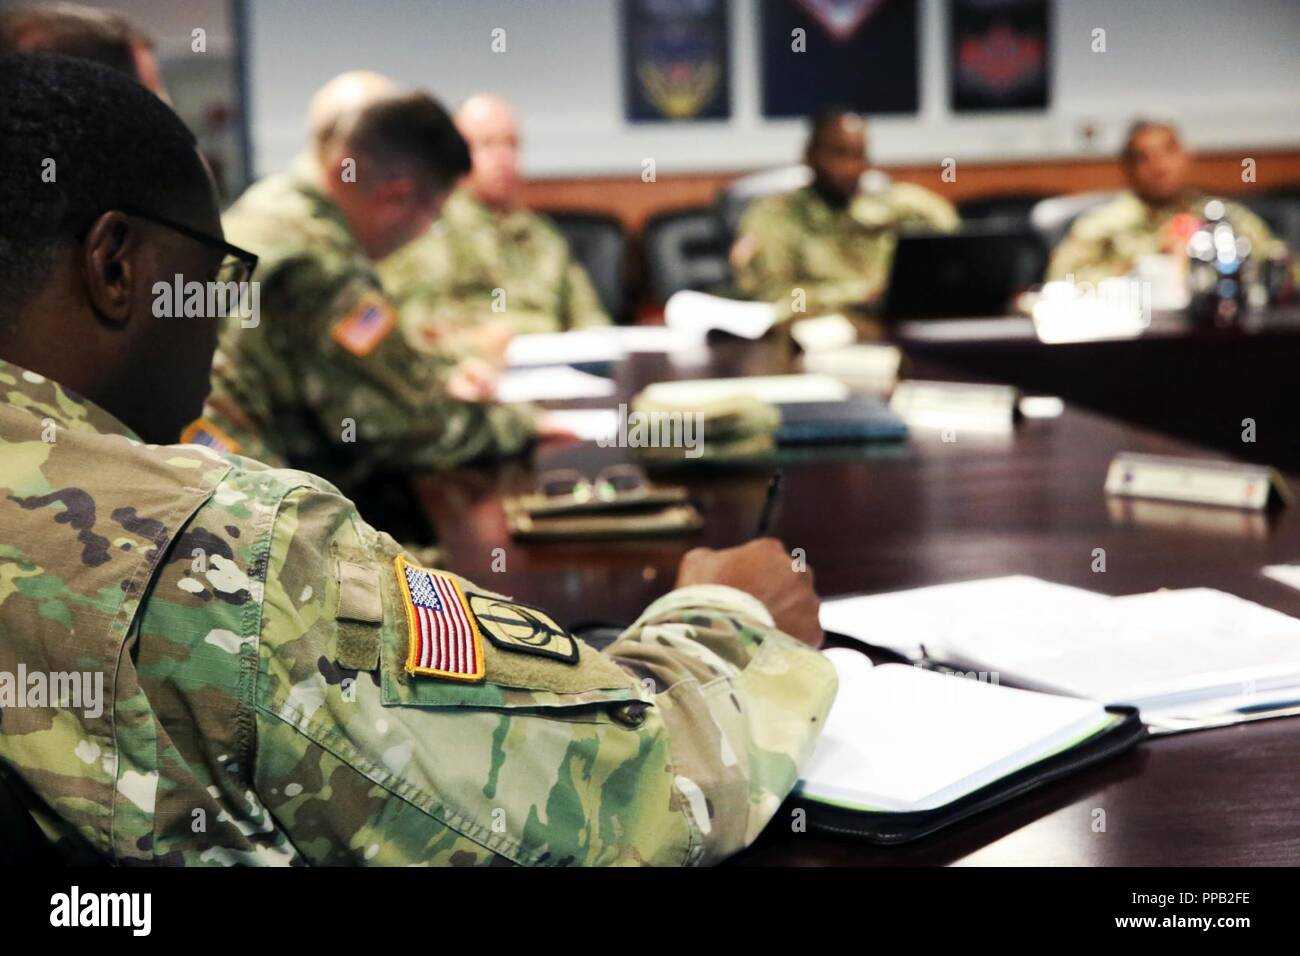 U.S. Army Maj. Julian Milligan, executive officer of the 151st Expeditionary Signal Battalion, 228th Theater Tactical Signal Brigade, South Carolina National Guard, takes notes during a meeting with leaders assigned to the 2d Theater Signal Brigade, Aug. 13, 2018 in Wiesbaden, Germany. Stock Photo